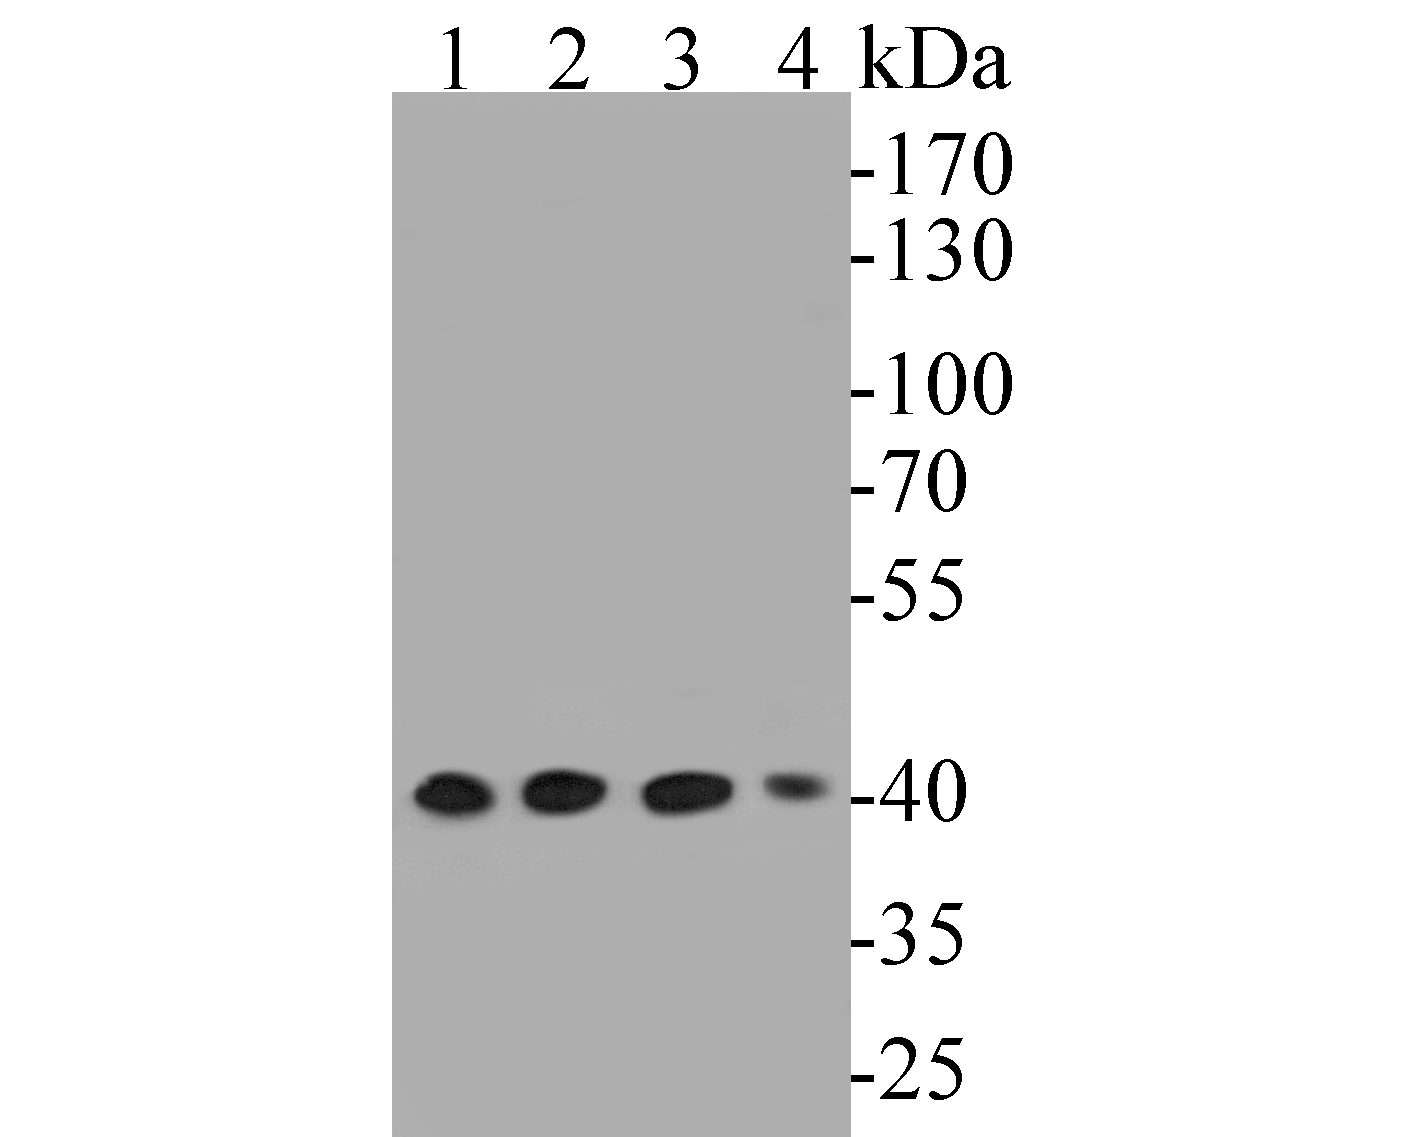 Western blot analysis of ERK2 on different lysates. Proteins were transferred to a PVDF membrane and blocked with 5% BSA in PBS for 1 hour at room temperature. The primary antibody (EM1901-53, 1/500) was used in 5% BSA at room temperature for 2 hours. Goat Anti-Mouse IgG - HRP Secondary Antibody (HA1006) at 1:5,000 dilution was used for 1 hour at room temperature.<br /> Positive control: <br /> Lane 1: Hela cell lysate<br /> Lane 2: 293T cell lysate<br /> Lane 1: NIH/3T3 cell lysate<br /> Lane 2: K562 cell lysate